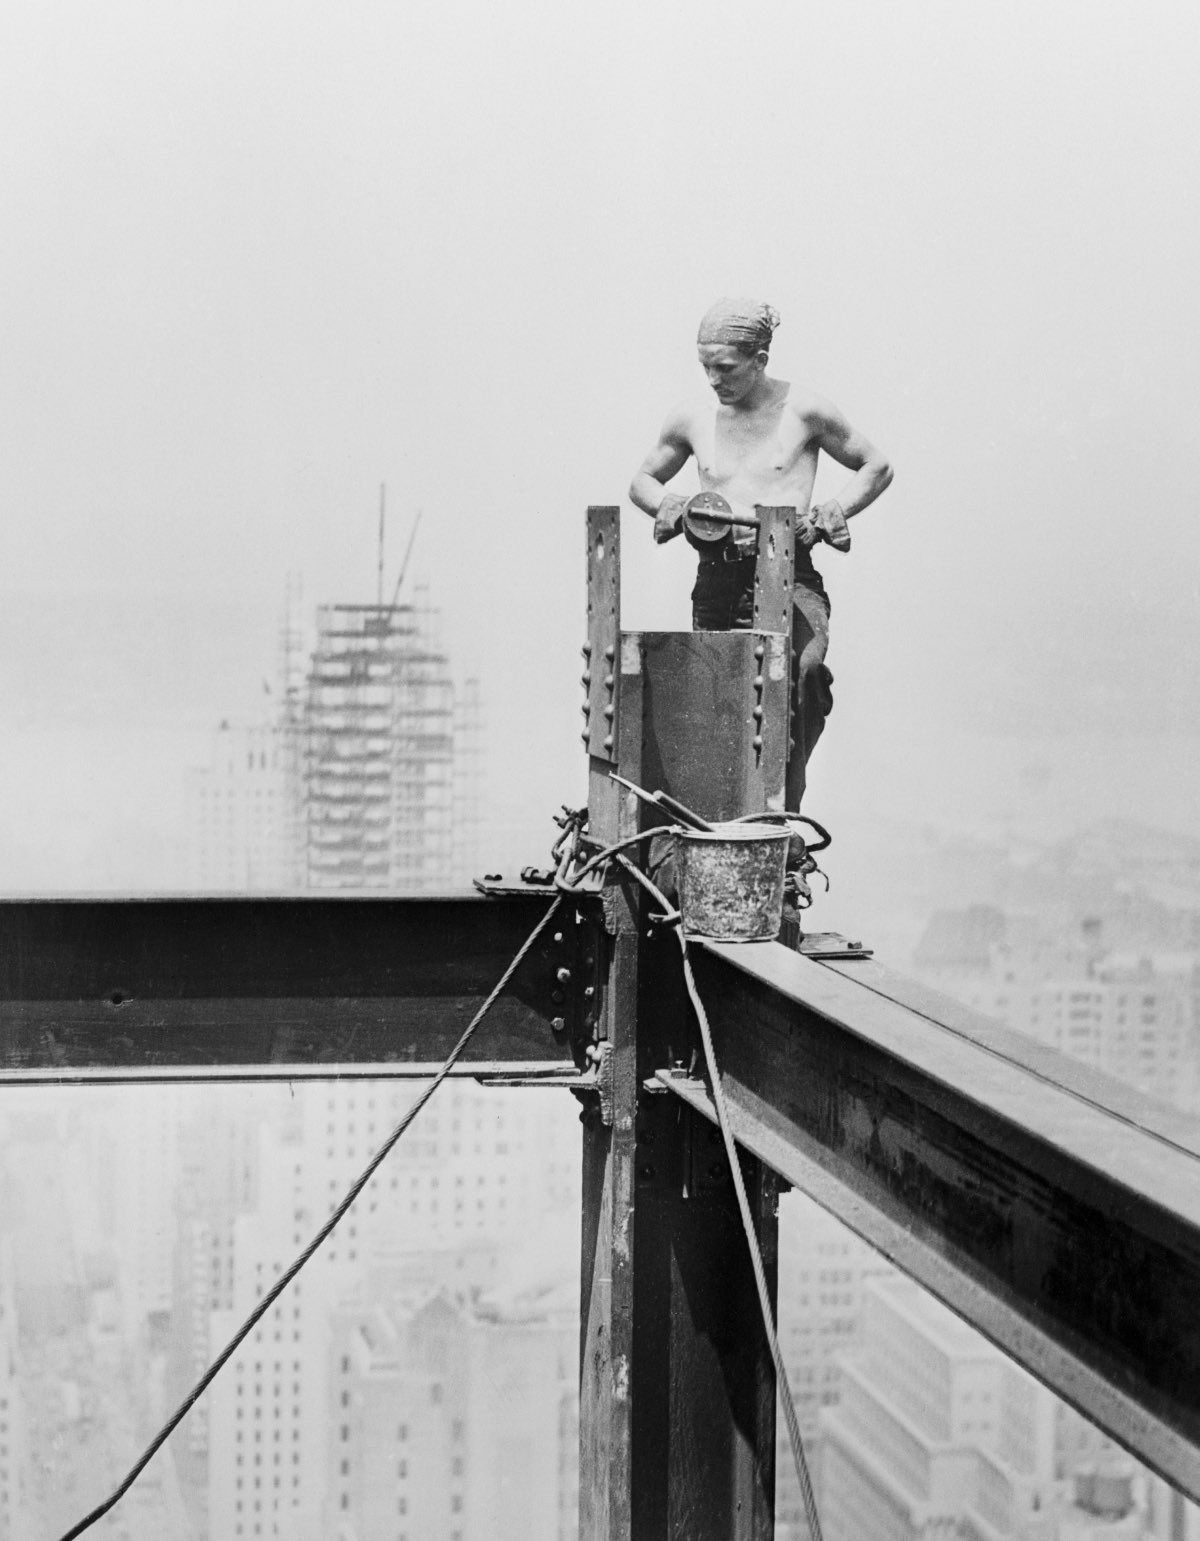 Defying death  at 1,284 feet into the air, New York, 1930